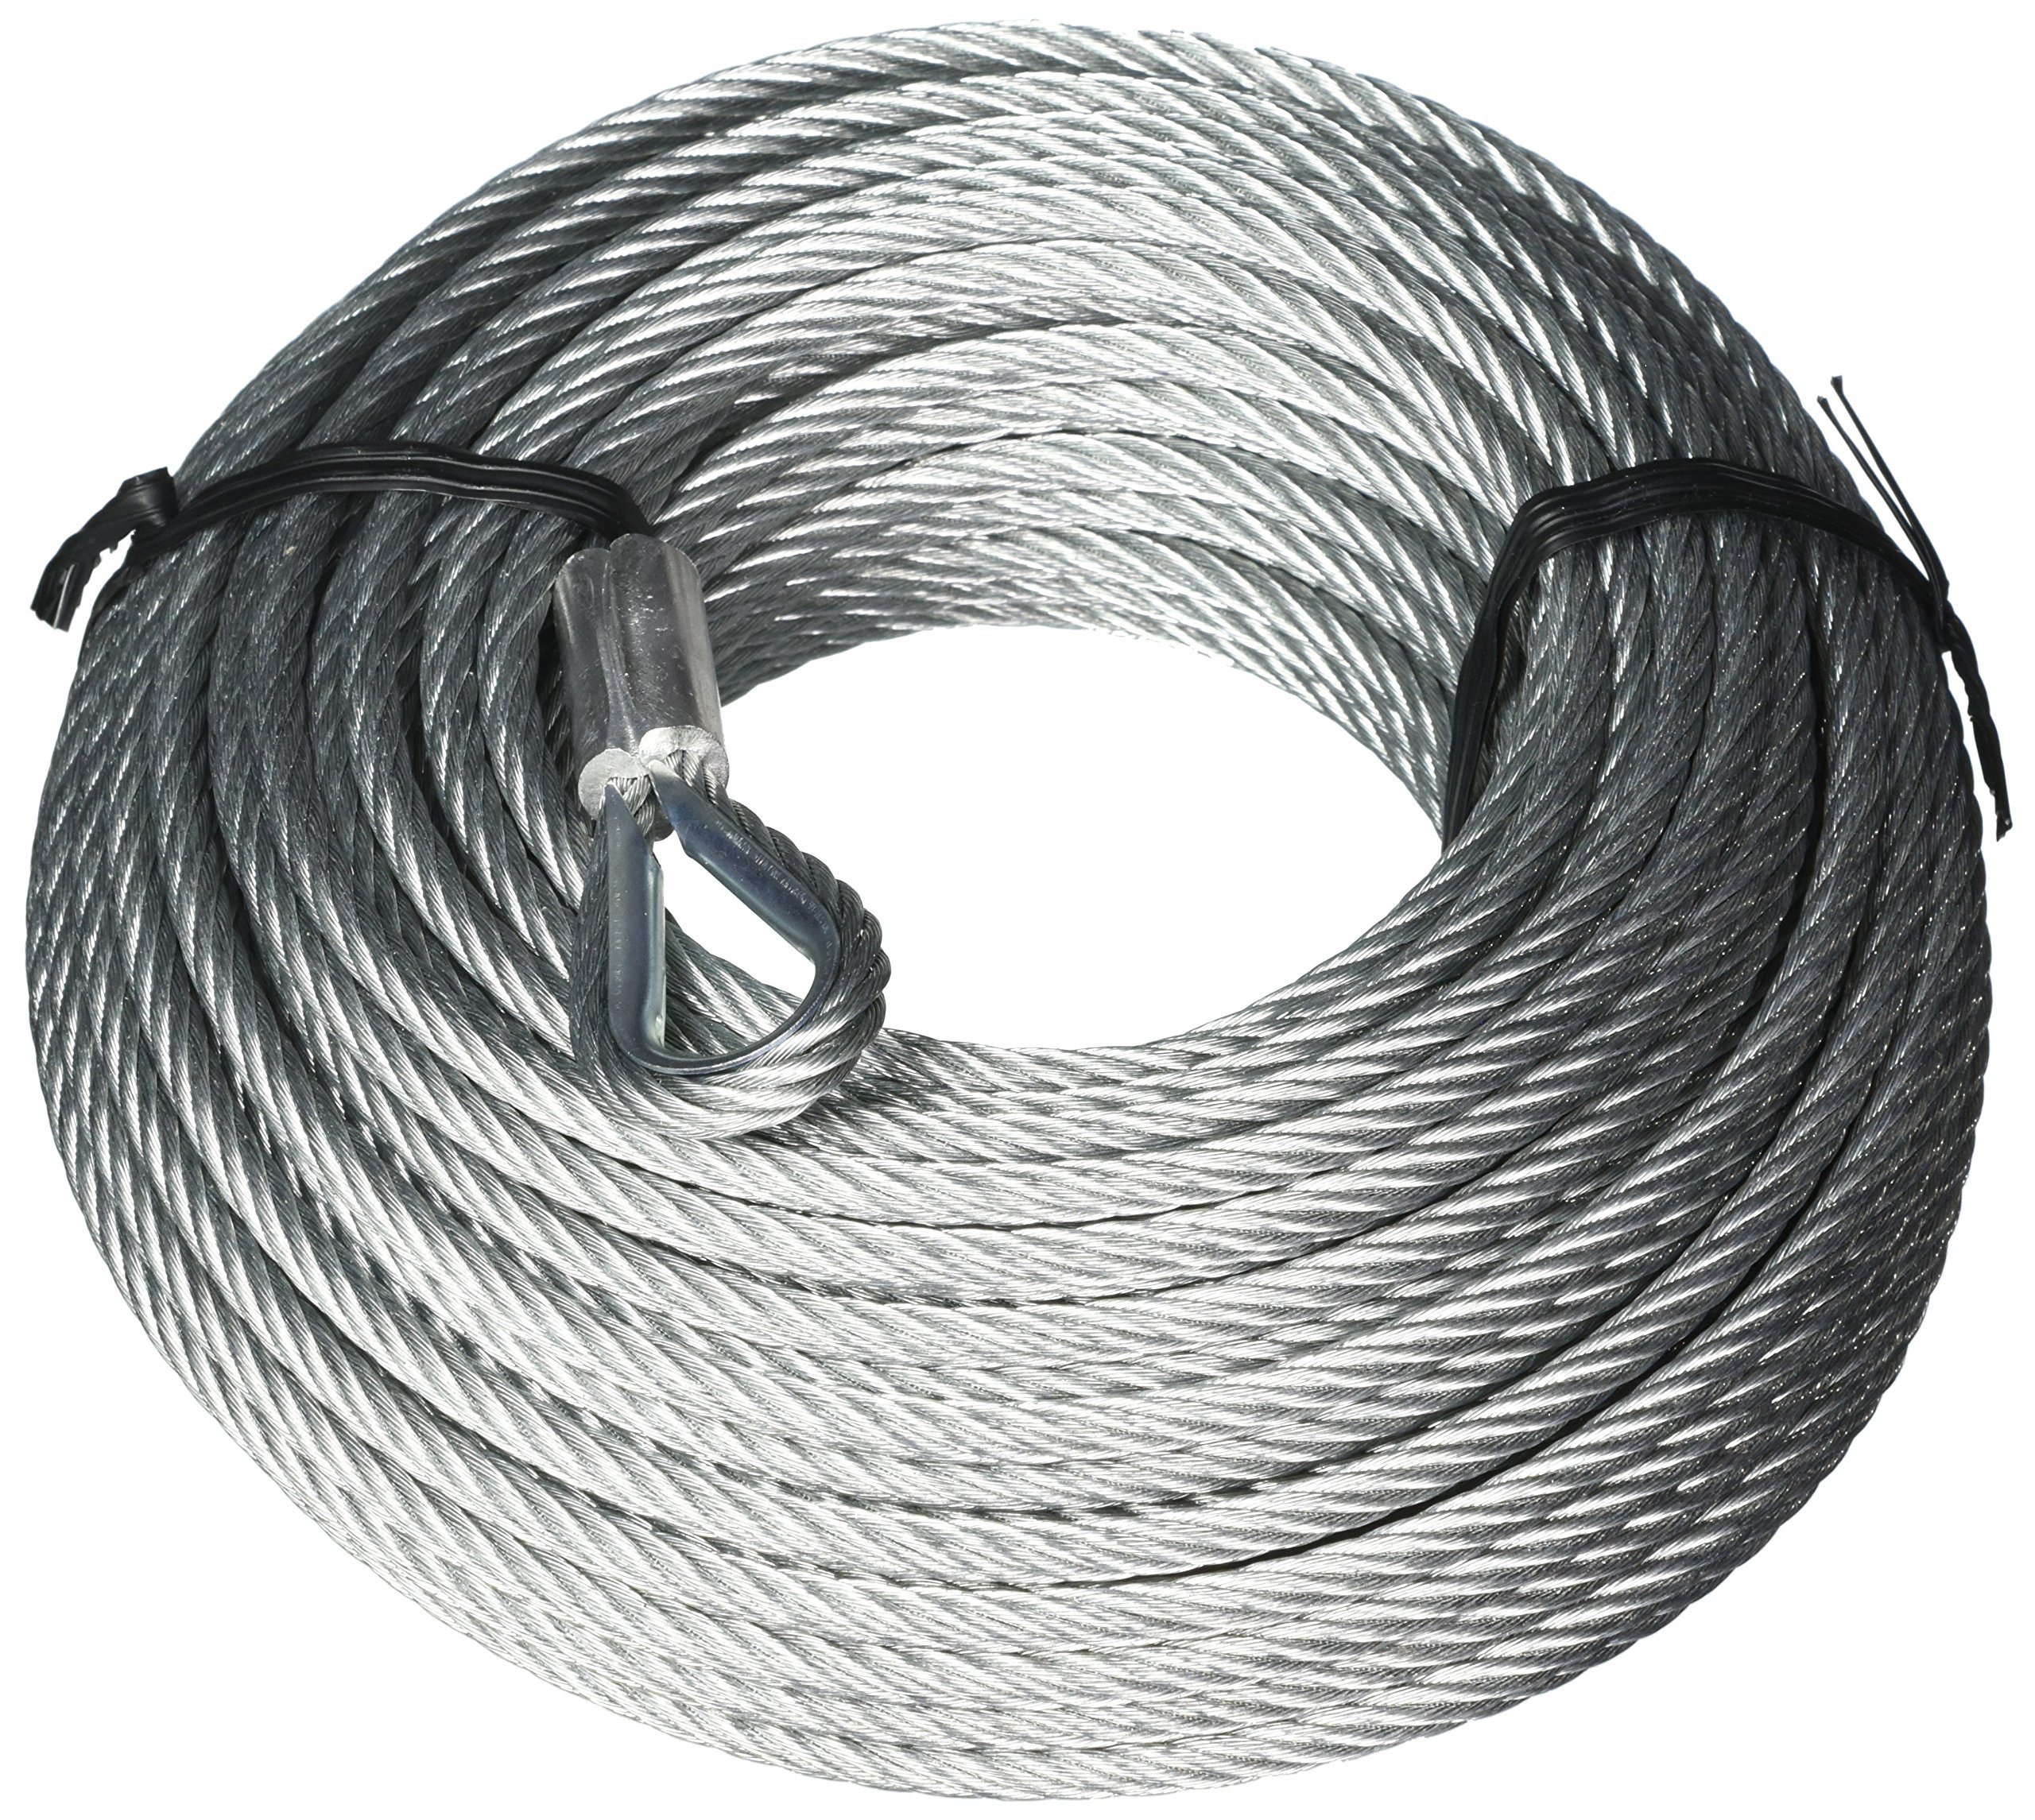 Tie Down 50095 Galvanized Cable (Swagged Loop and Thimble, 1/4 Inch, 100 Foot Roll)